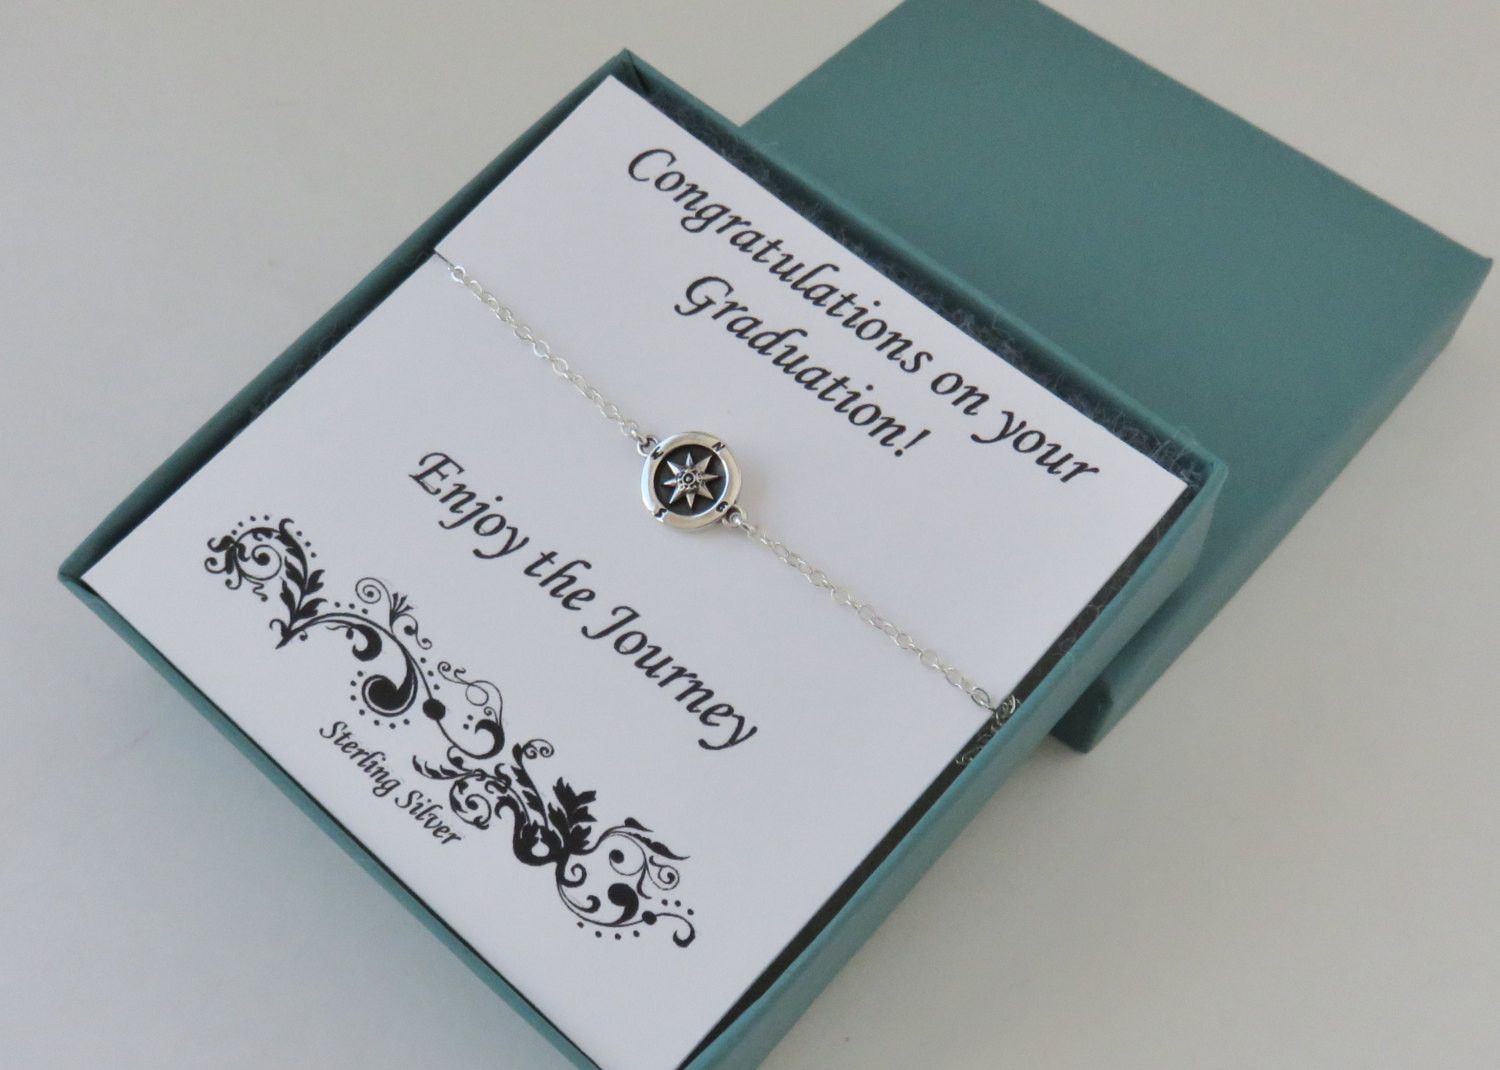 Graduation Jewelry Gift Ideas For Her  Graduation Gift for Her retirement t women pass